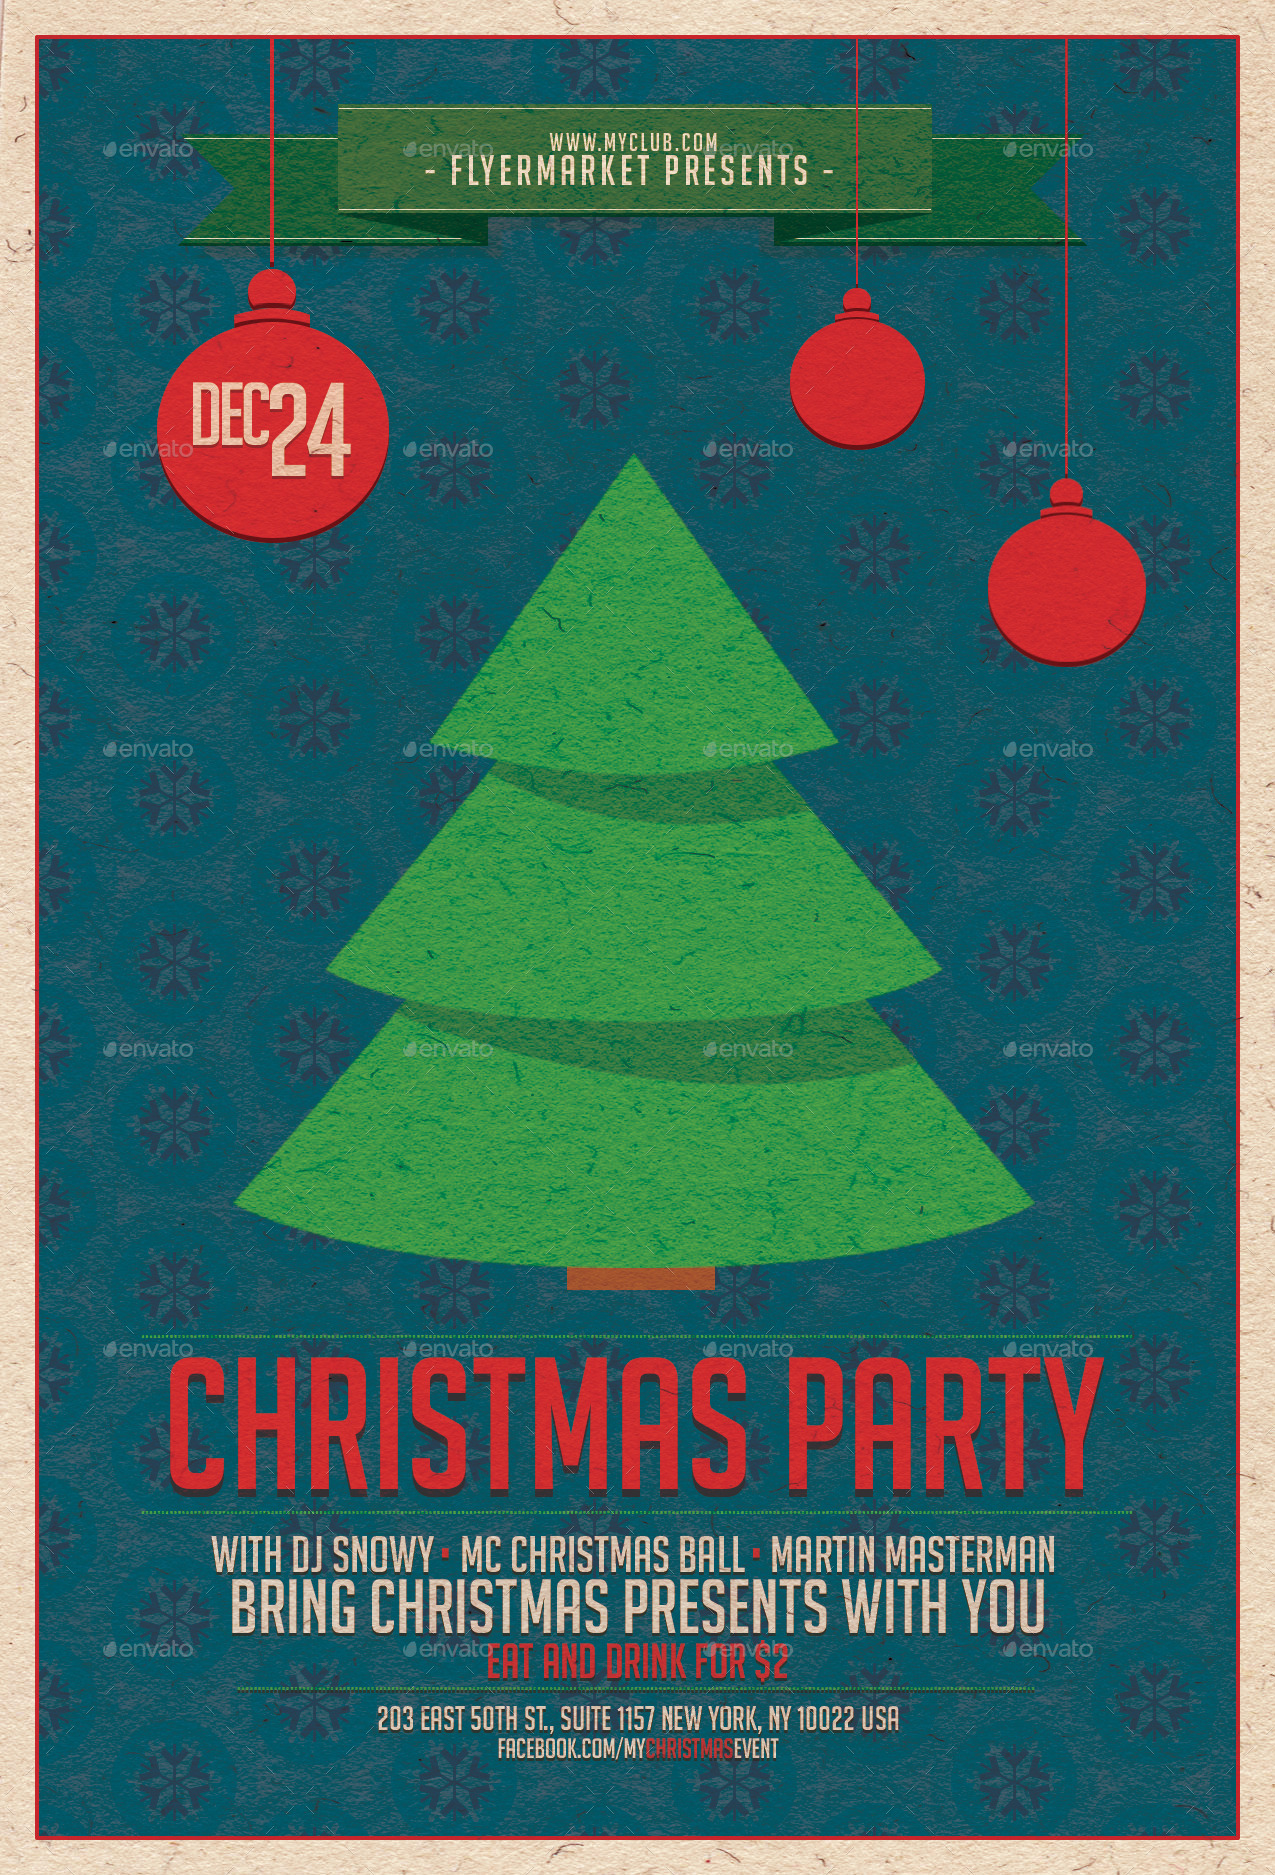 christmas party flyer template by flyermarket graphicriver christmas party v1 jpg